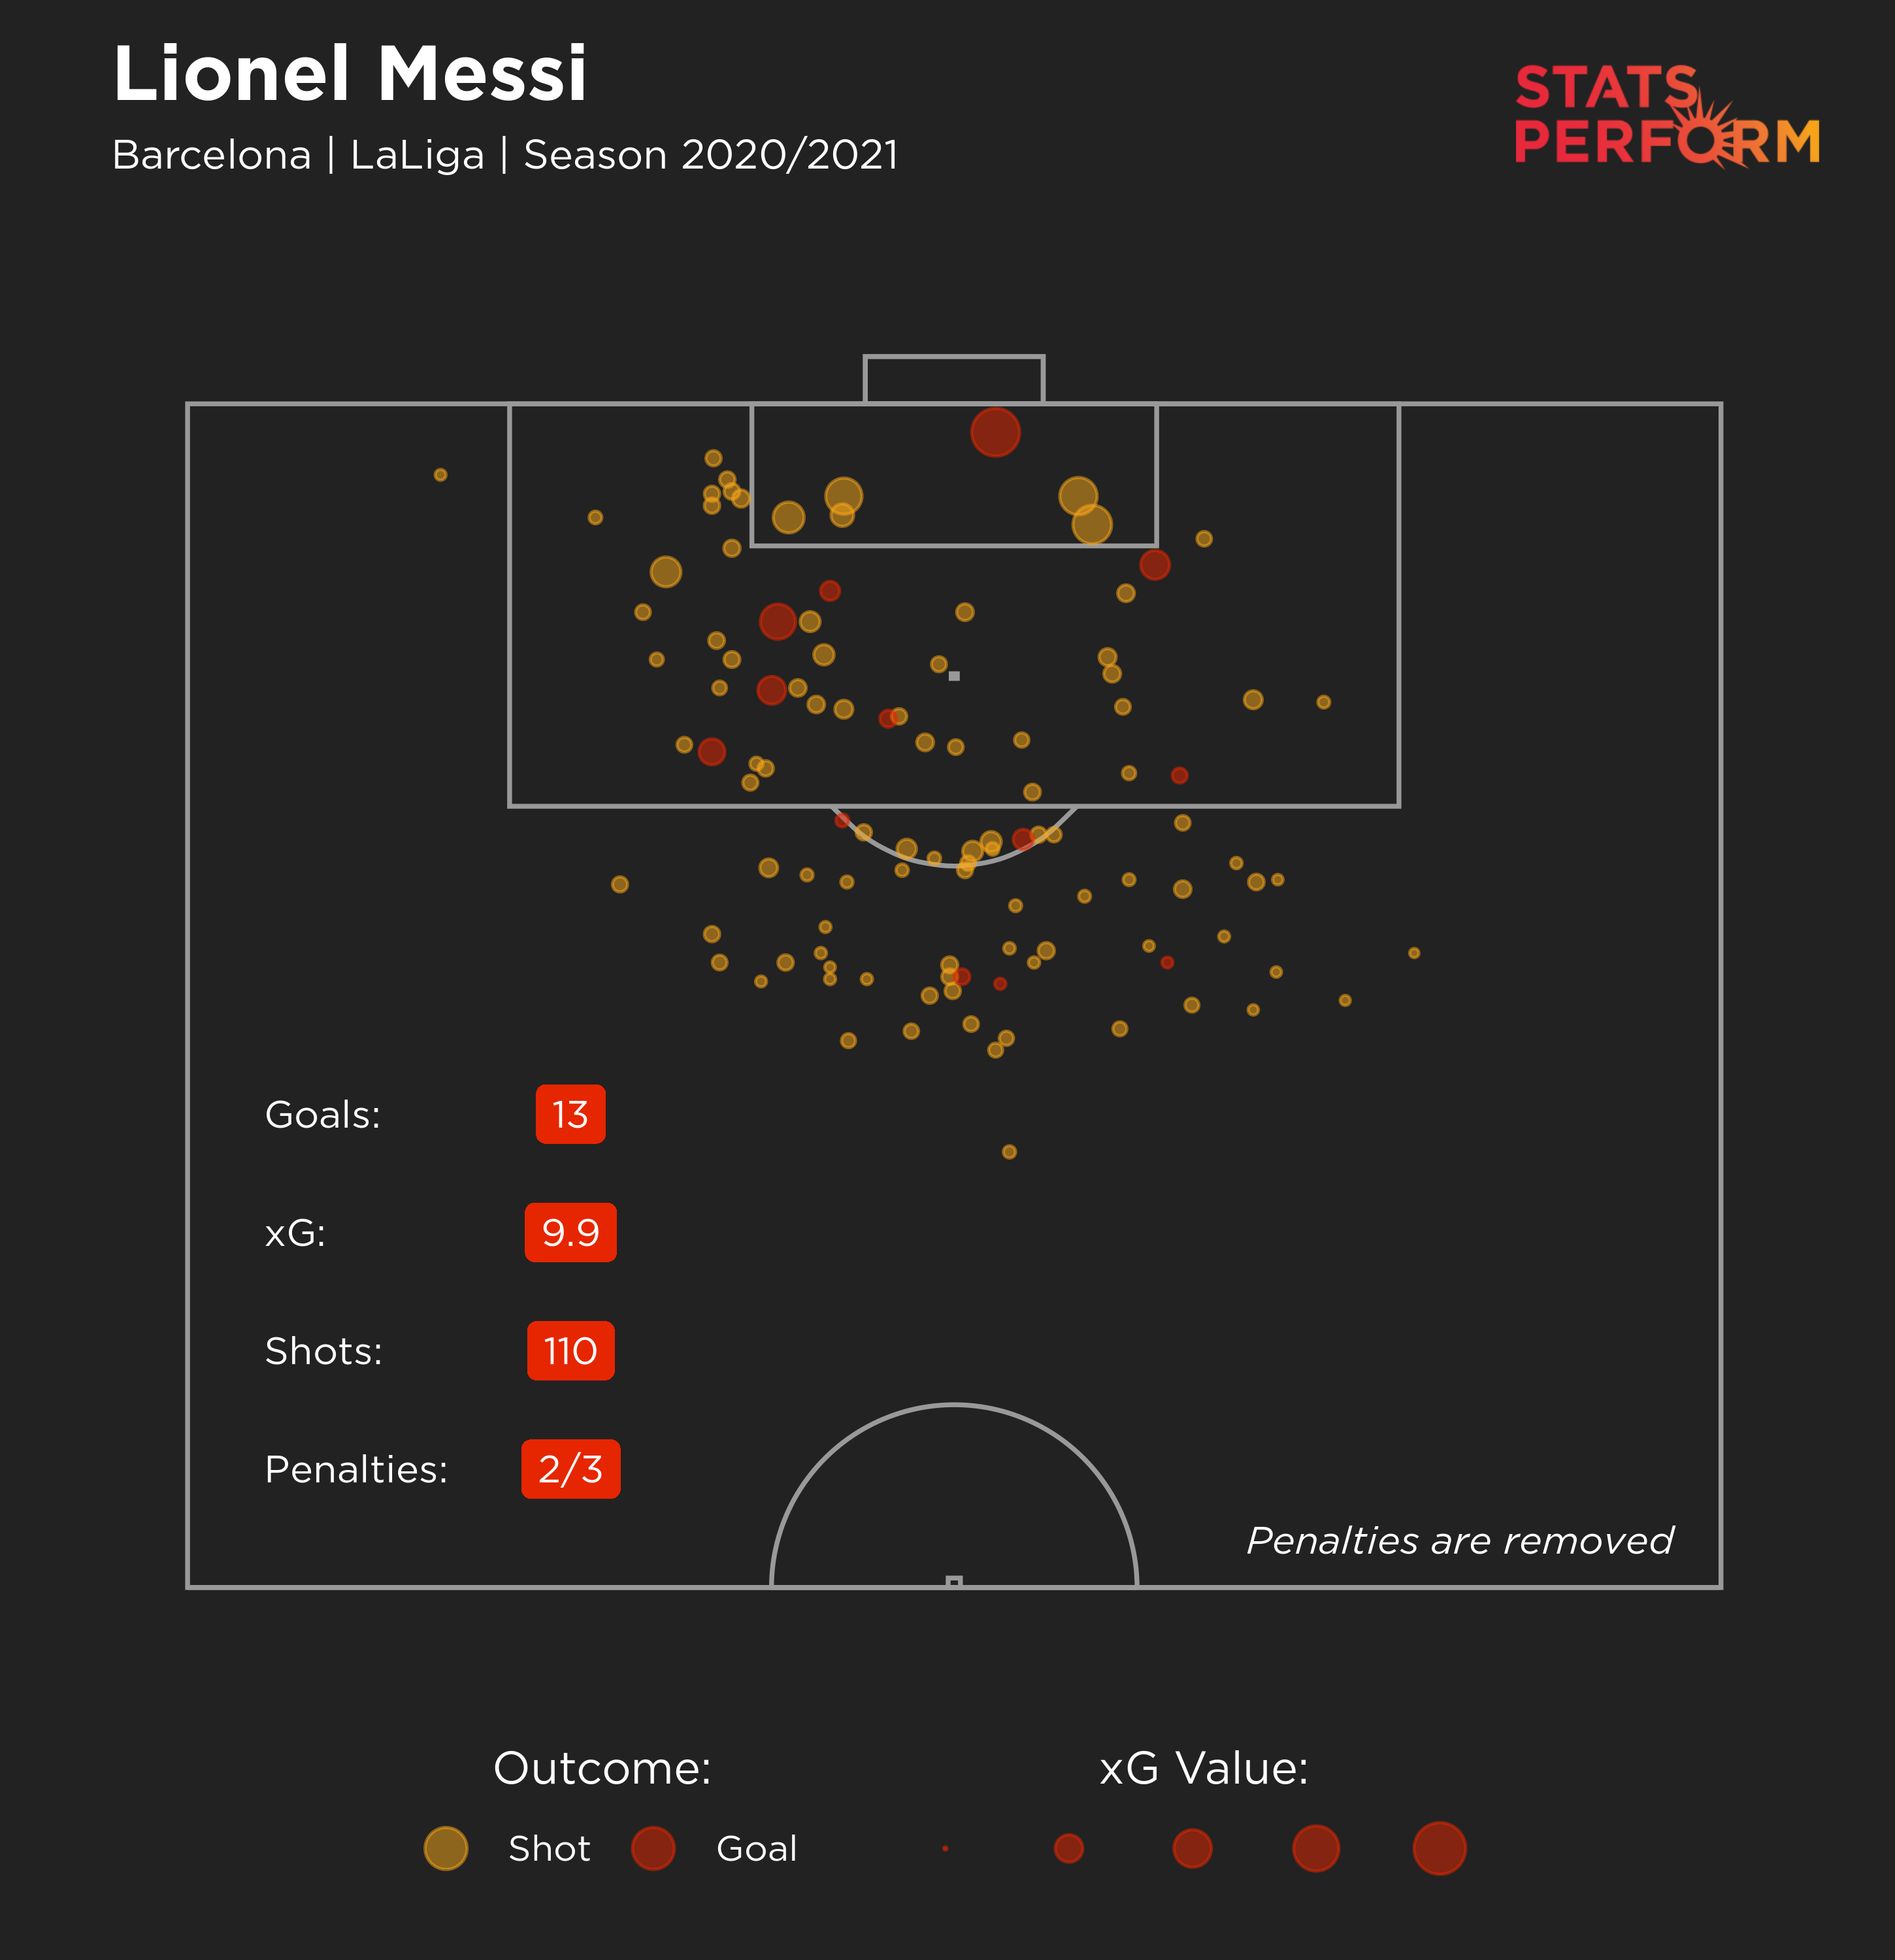 Lionel Messi's expected goals (xG) maps for 2020-21